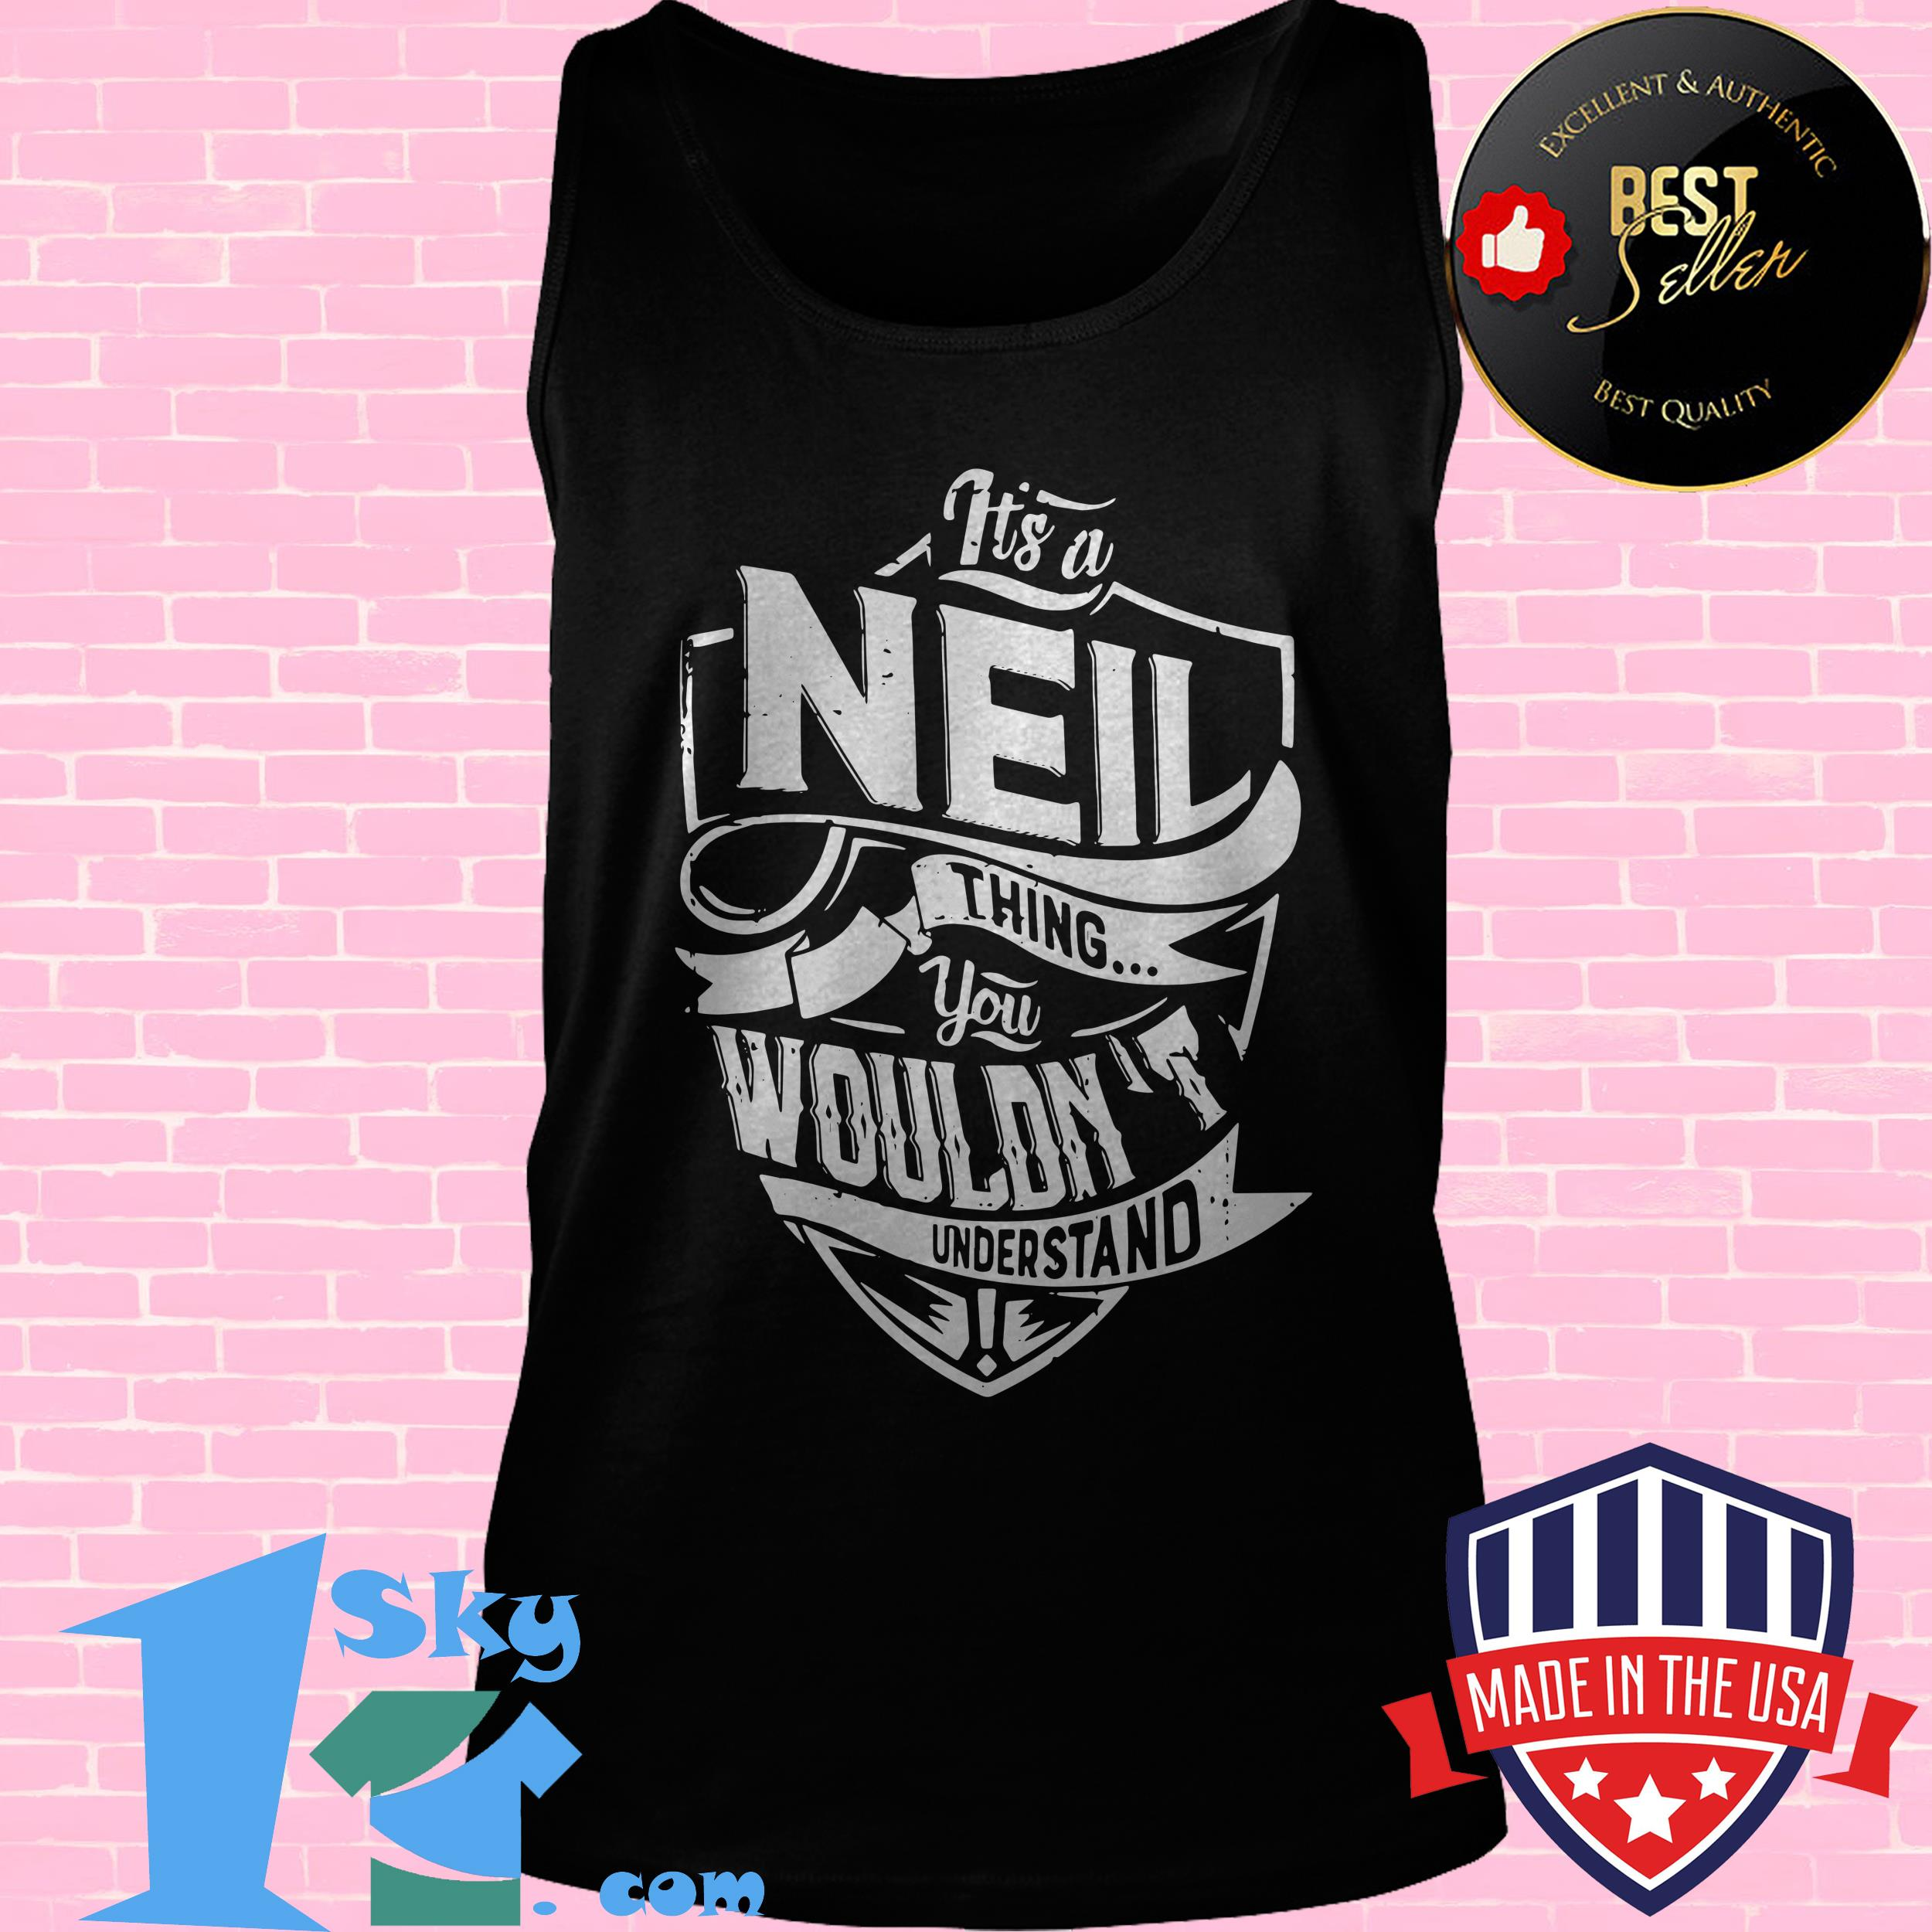 neil thing you wouldnt understand tank top - Neil Thing You Wouldn't Understand shirt